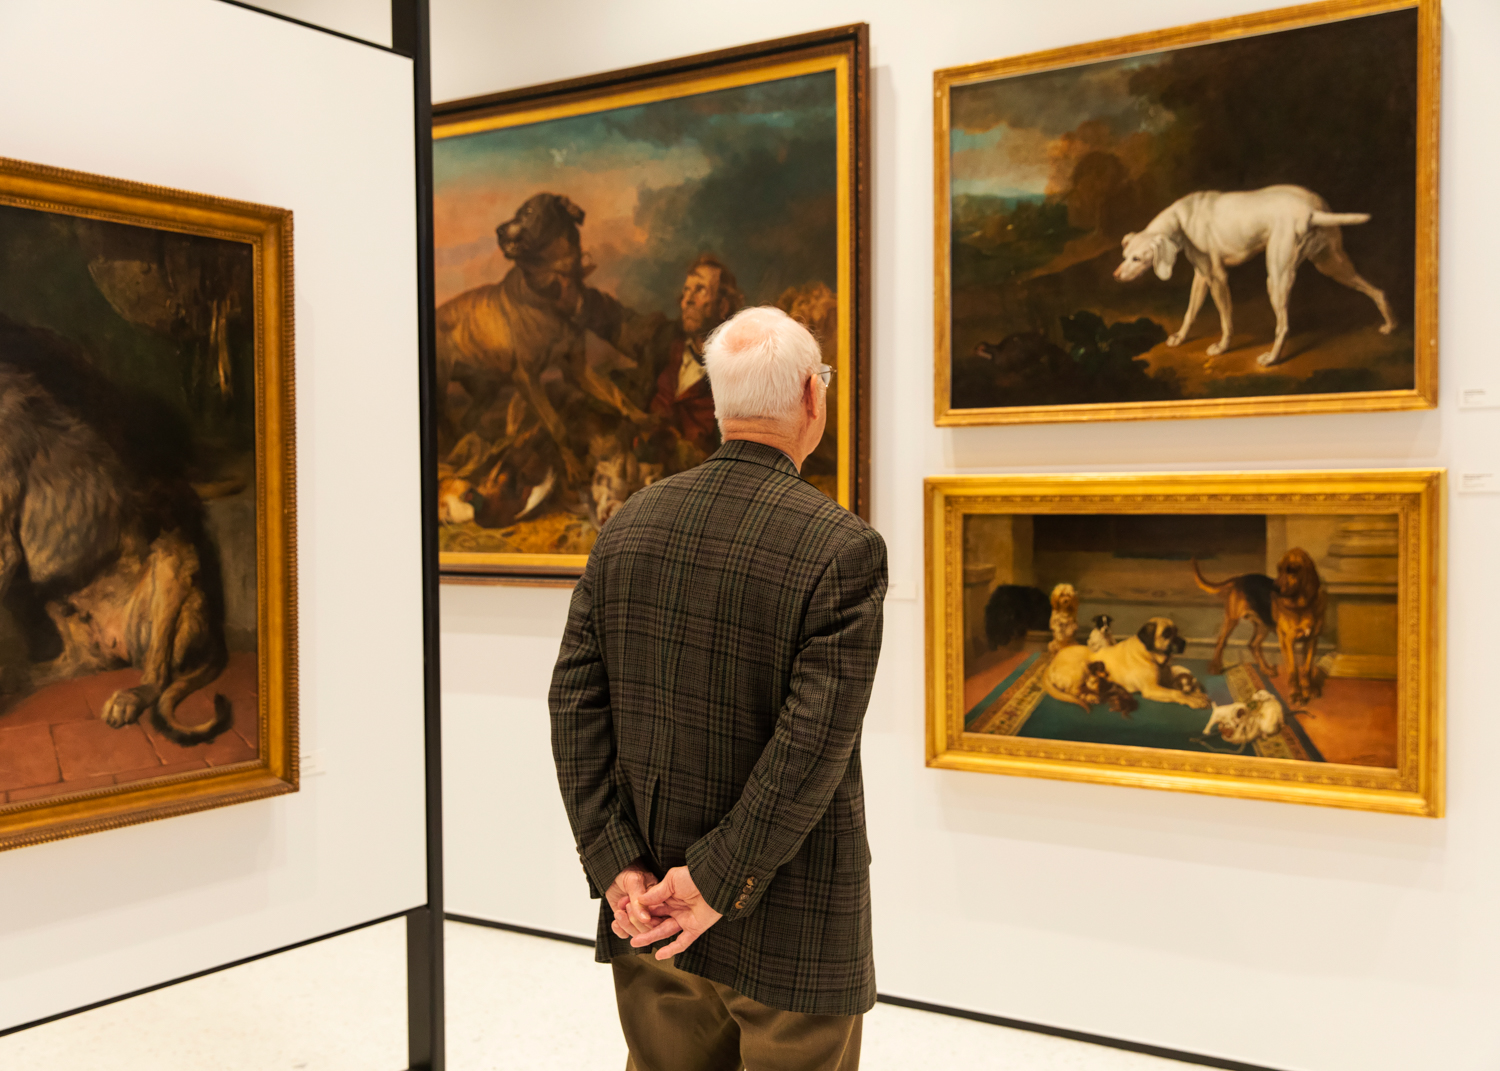 AKC MUSEUM OF THE DOG   THE NEW YORK TIMES